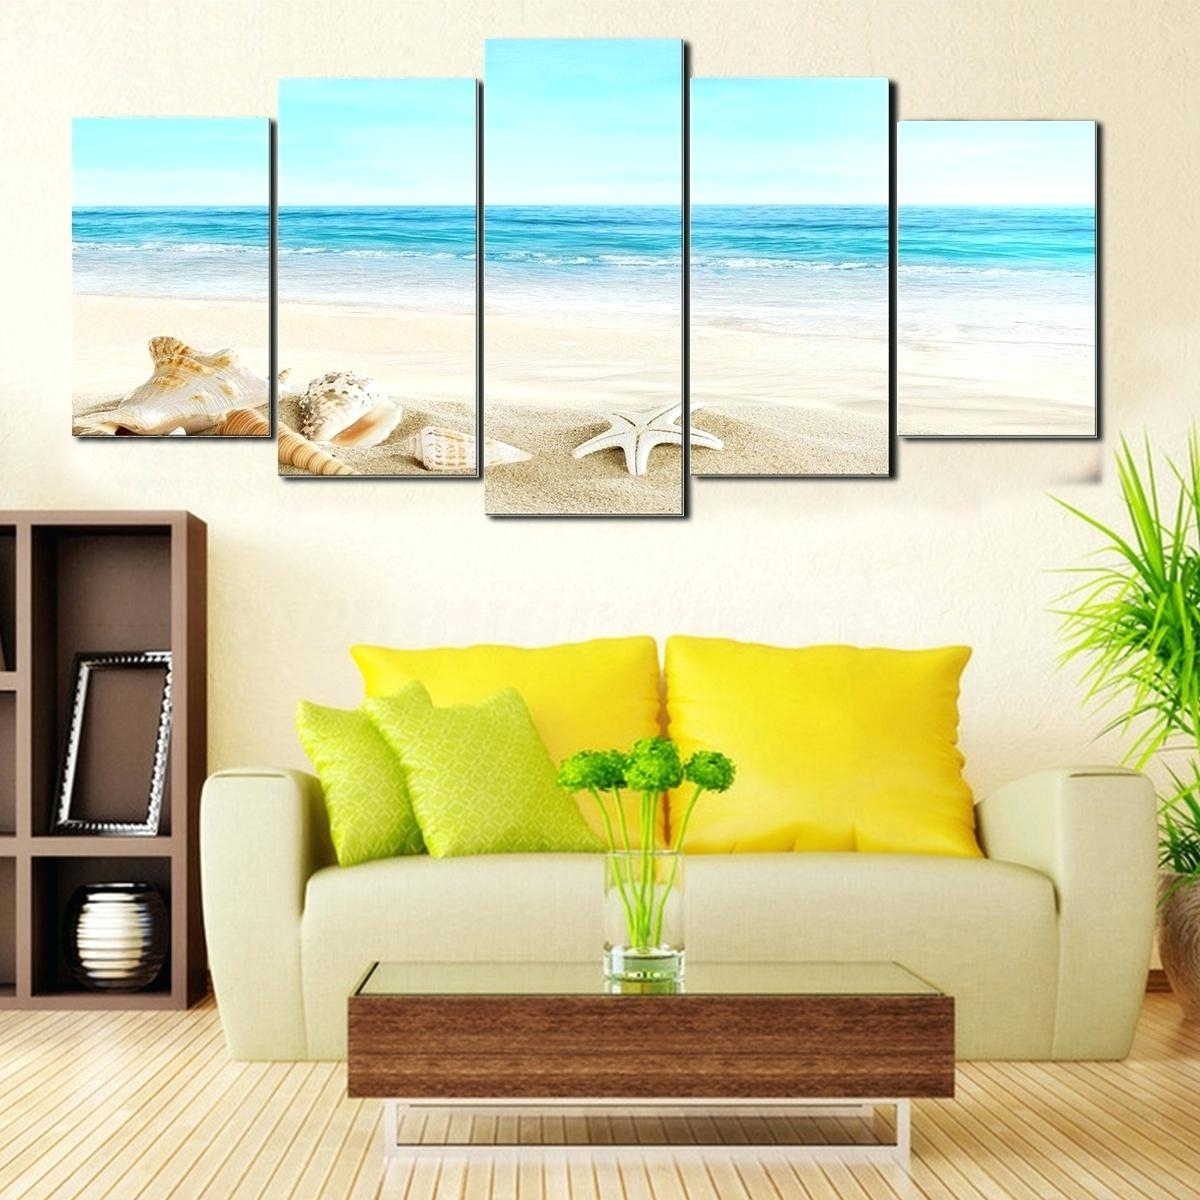 Framed Beach Art Glass Large Prints – Biophilessurf regarding Recent Framed Beach Art Prints